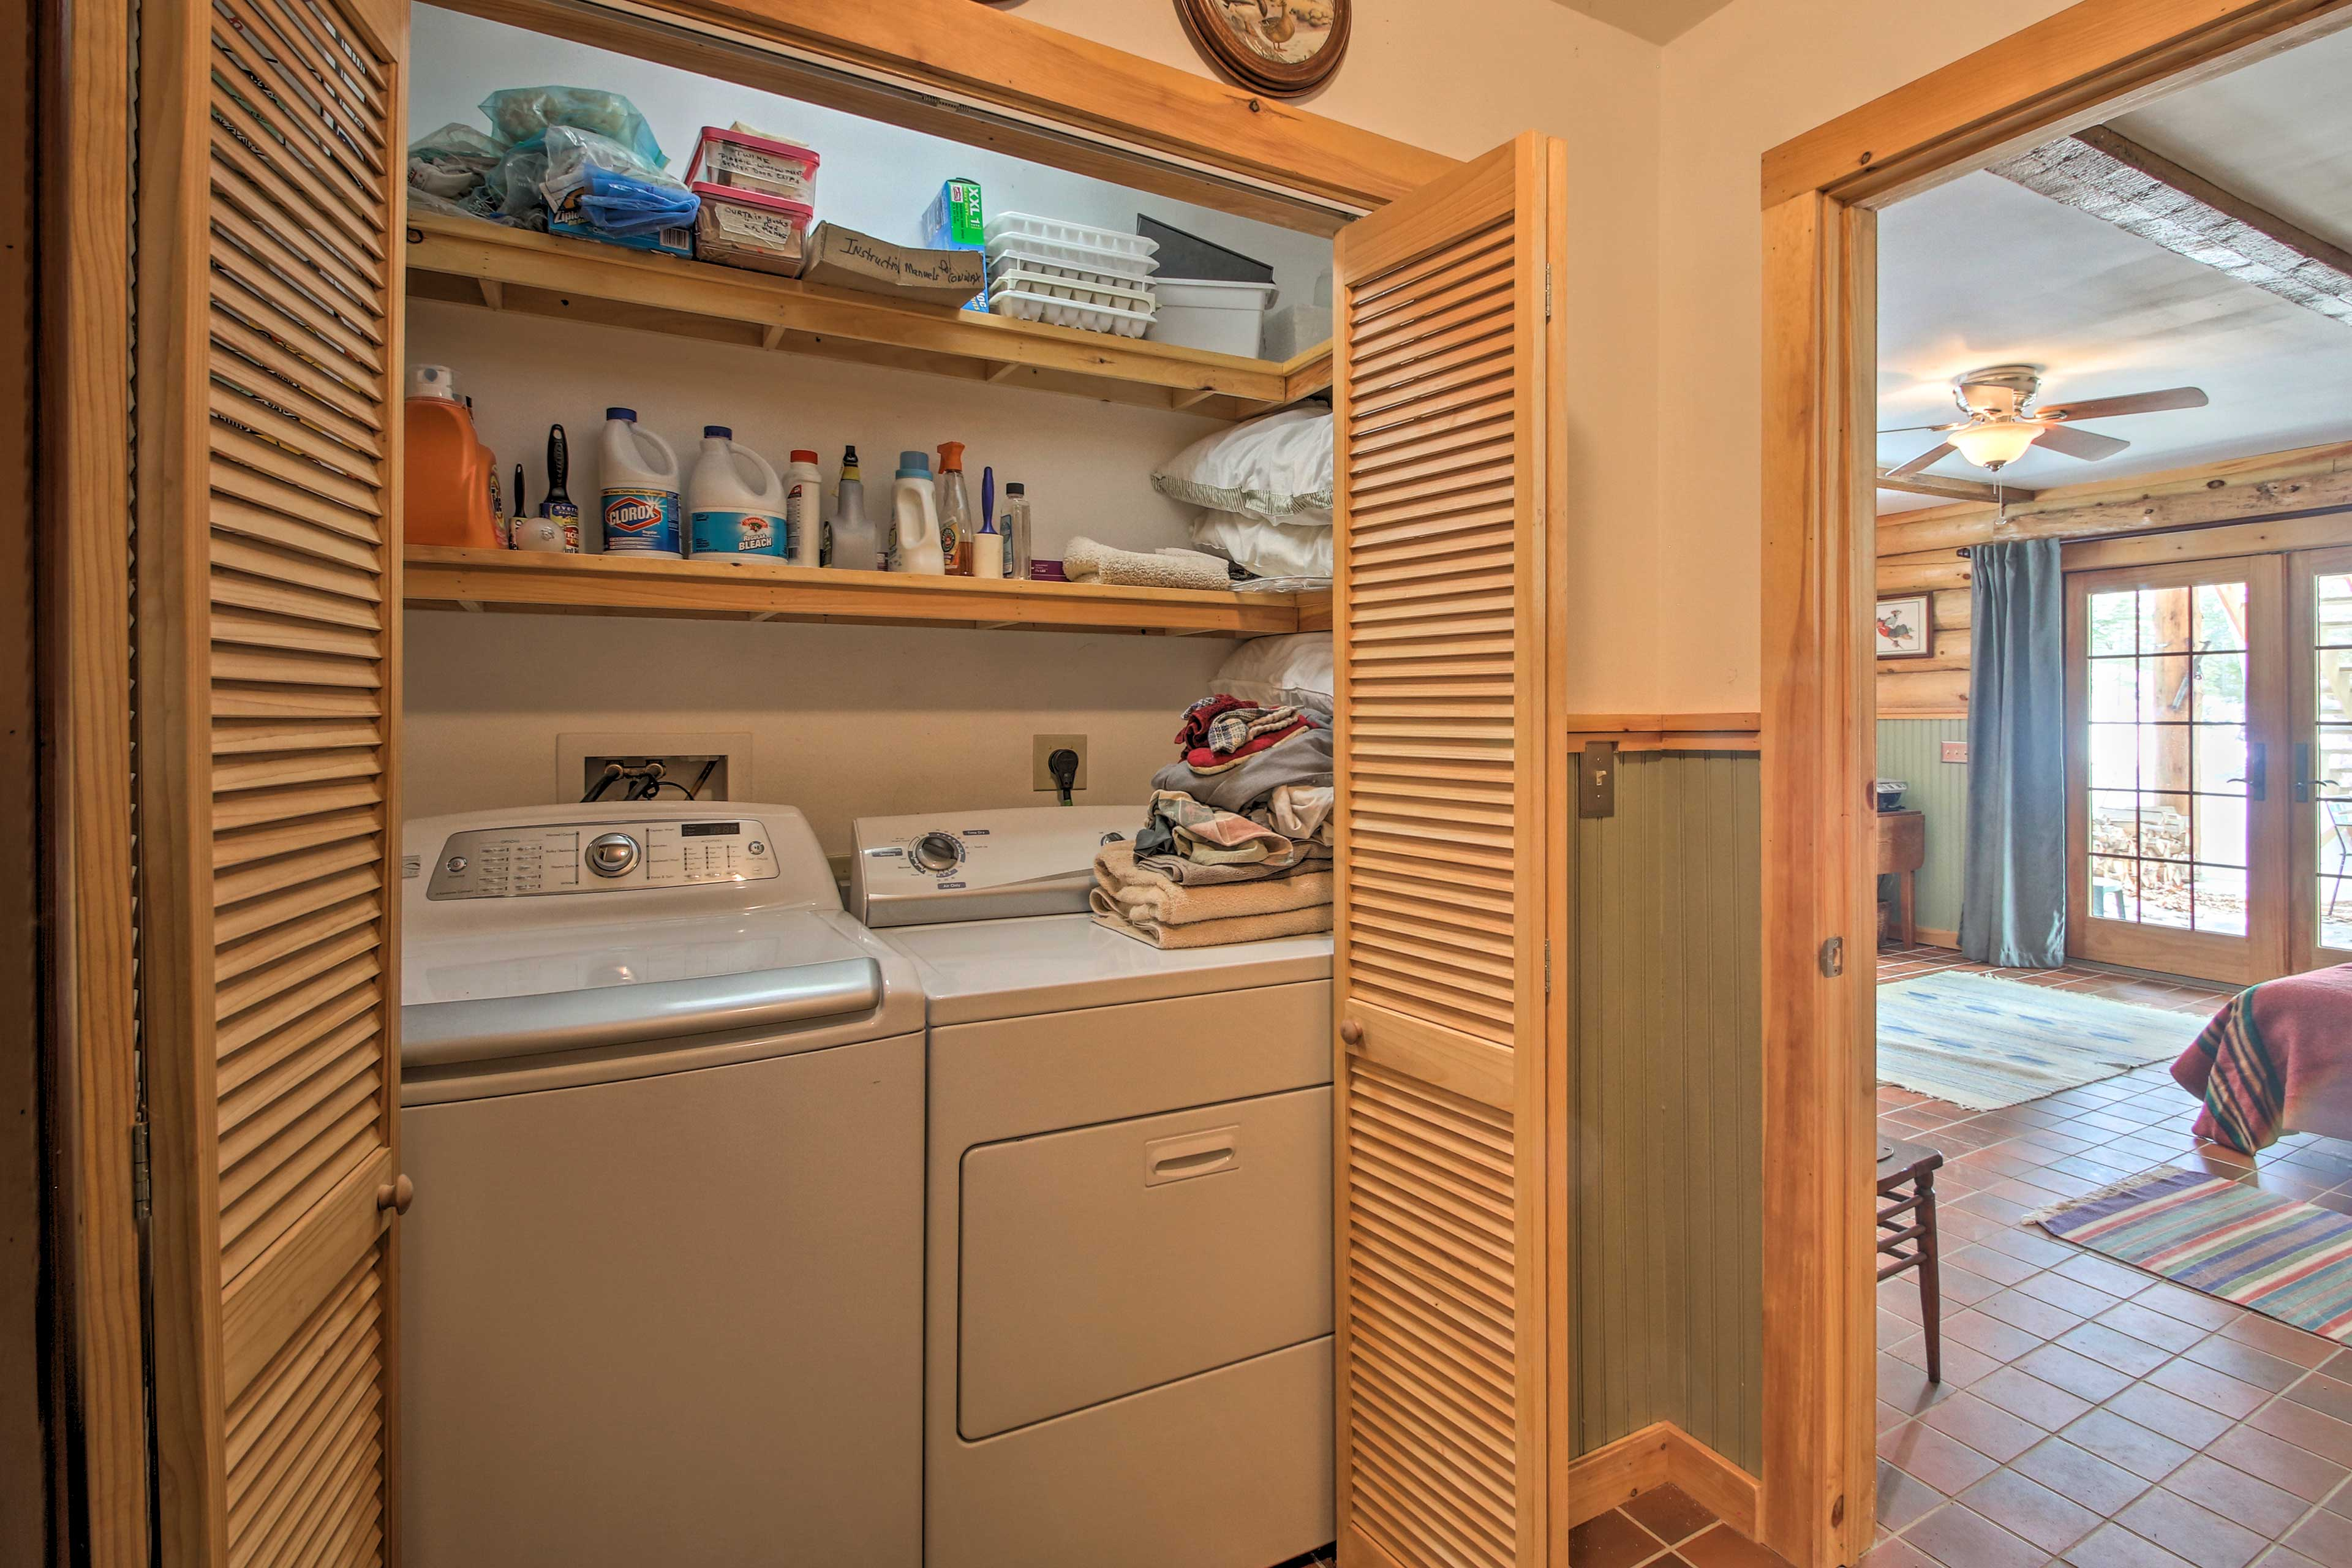 Pack light thanks to the in-unit laundry machines, plus laundry detergent!